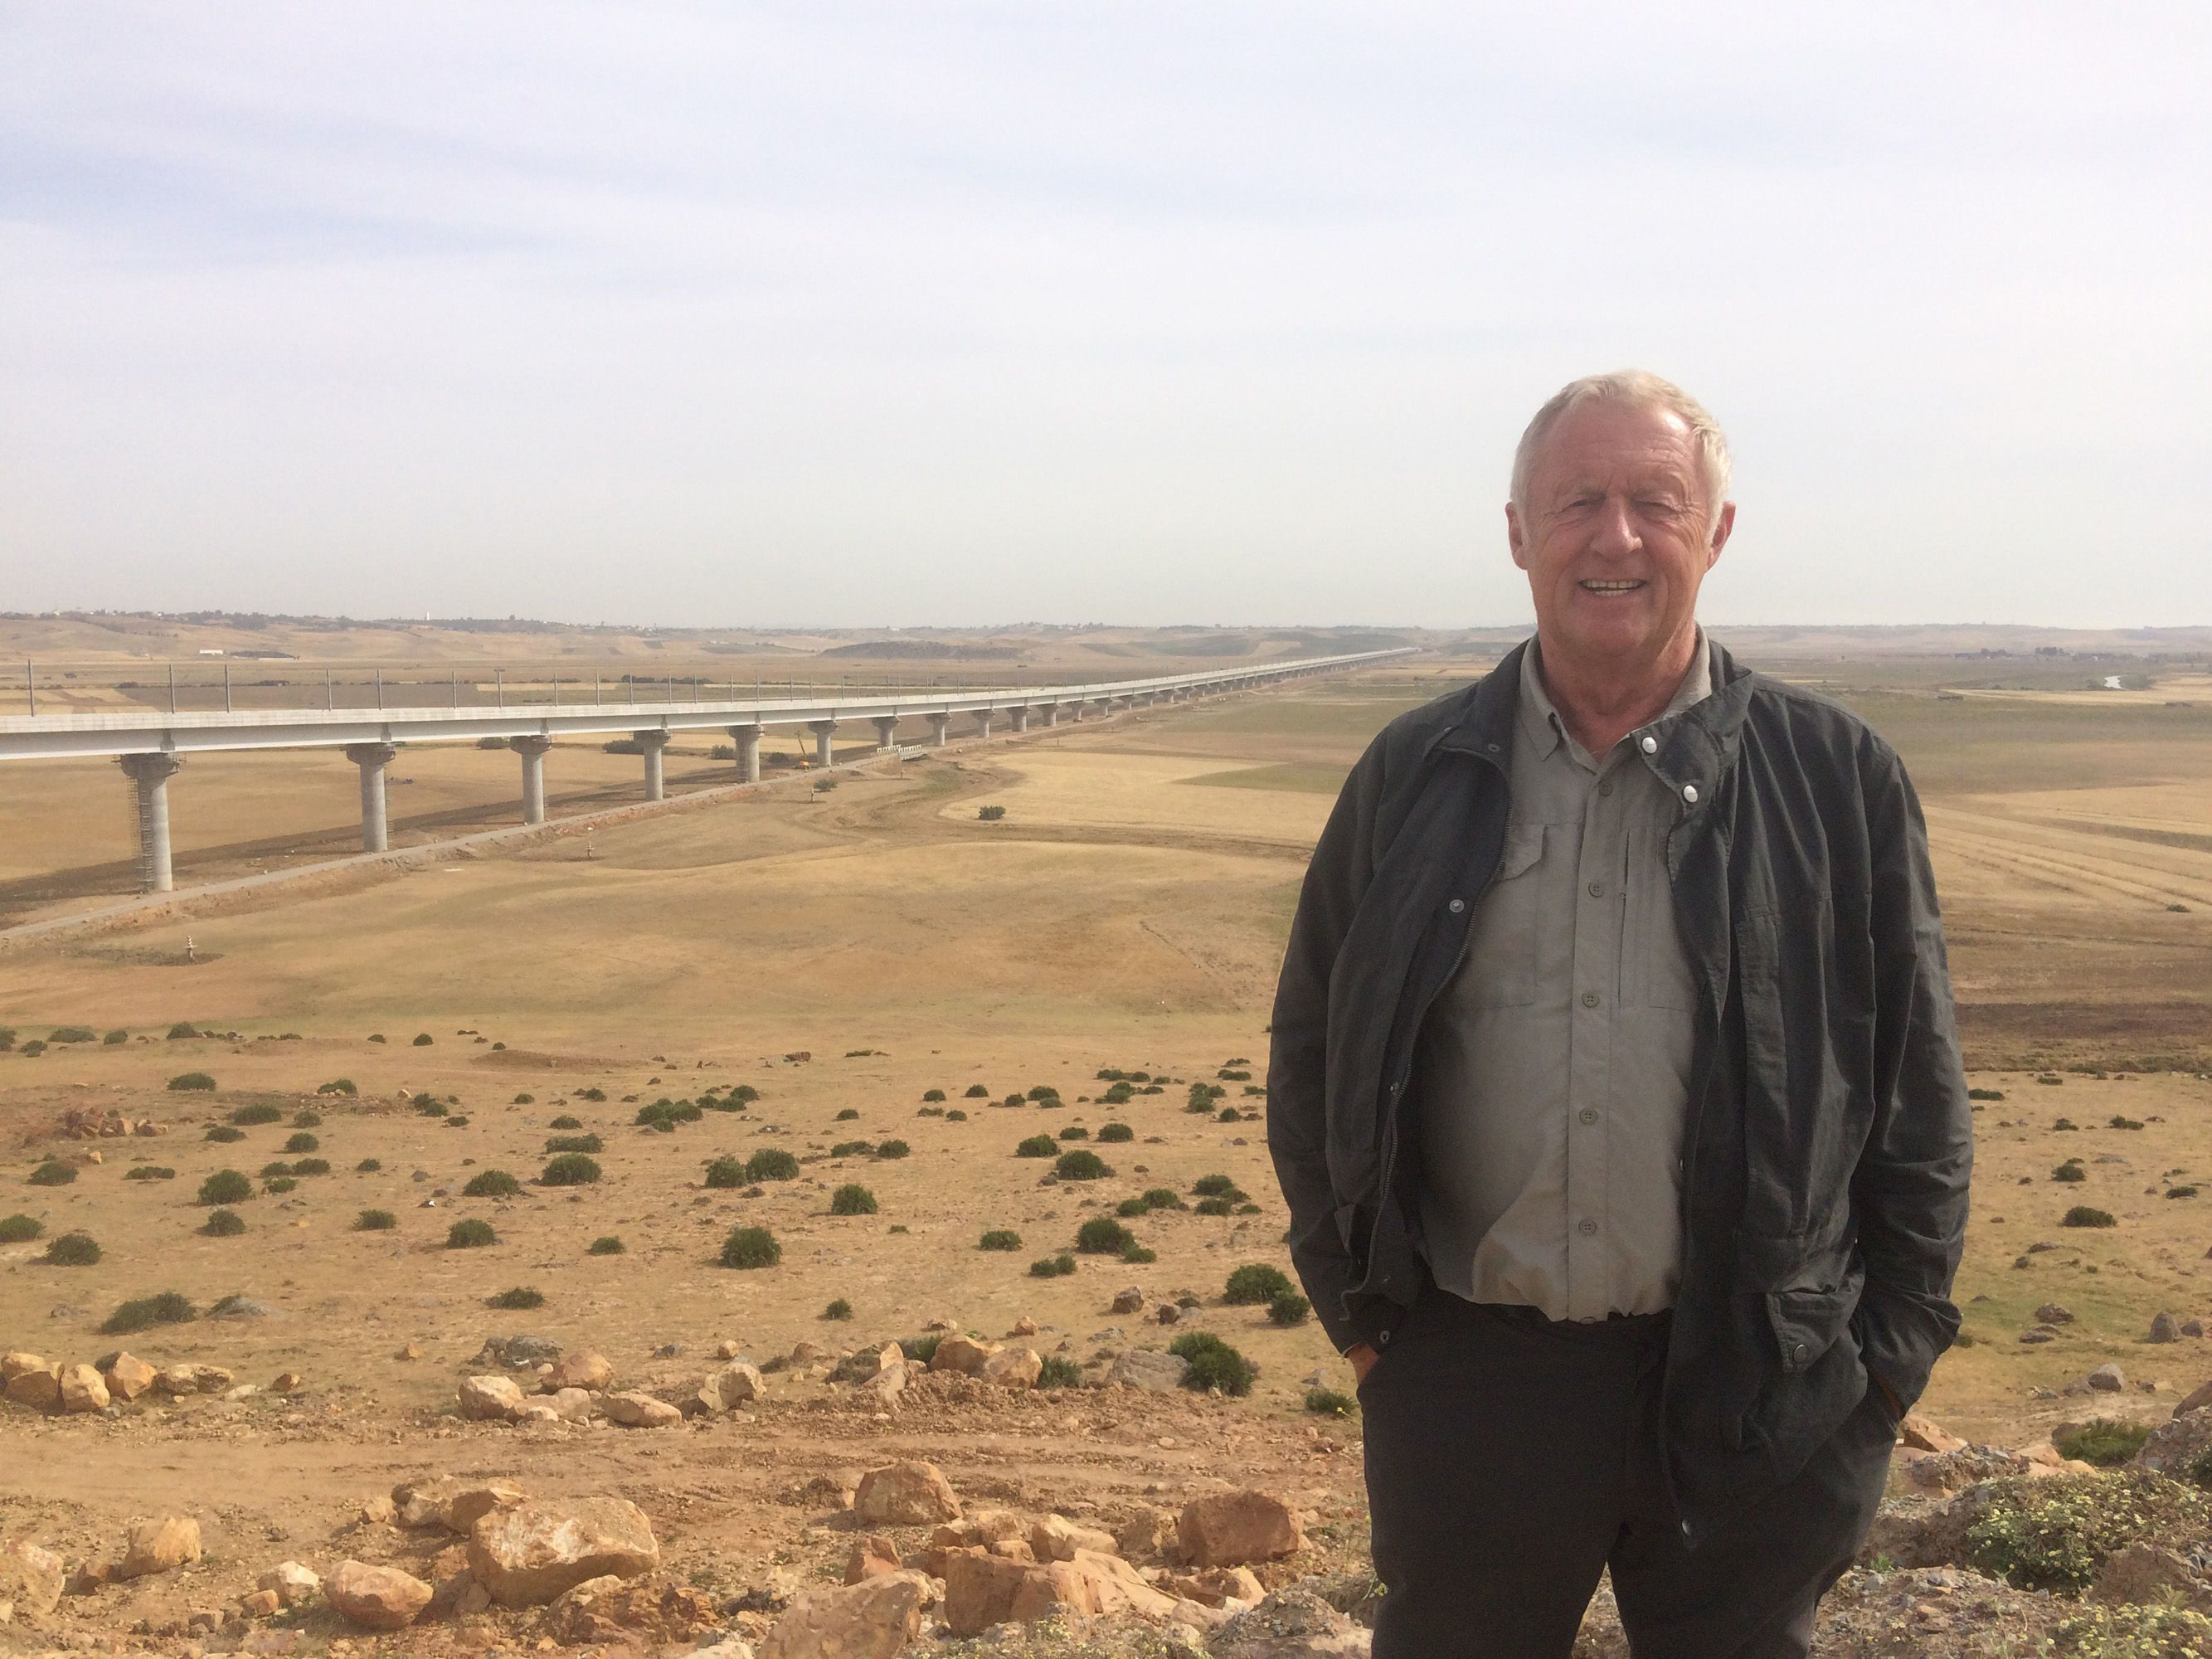 Chris standing in front of 200 million pound Faisal Bridge, Morocco